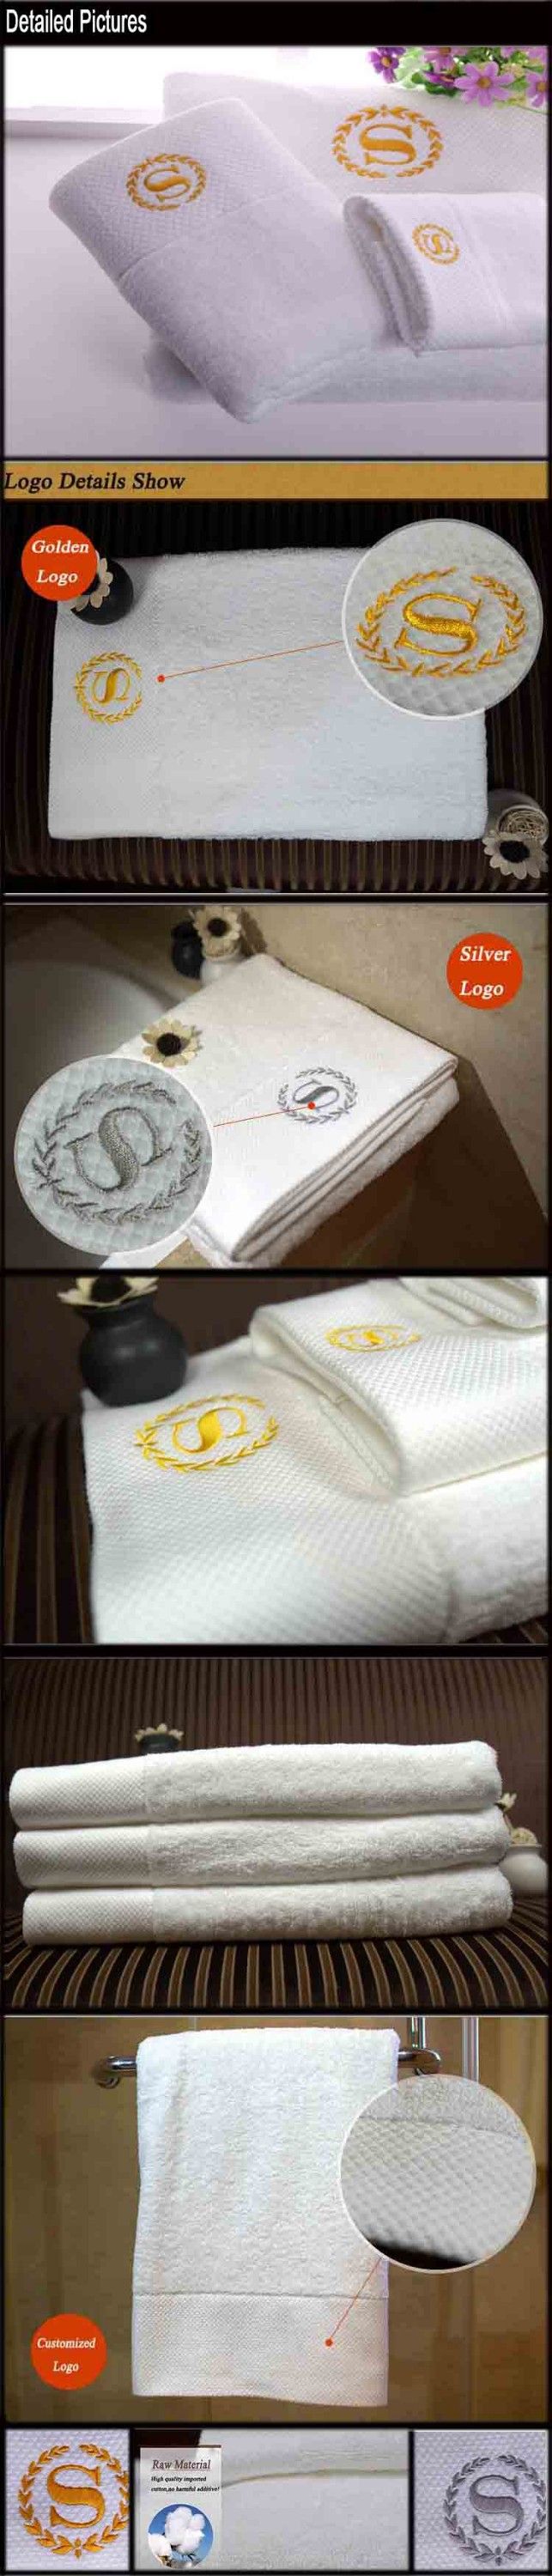 hotel cotton towel .jpg